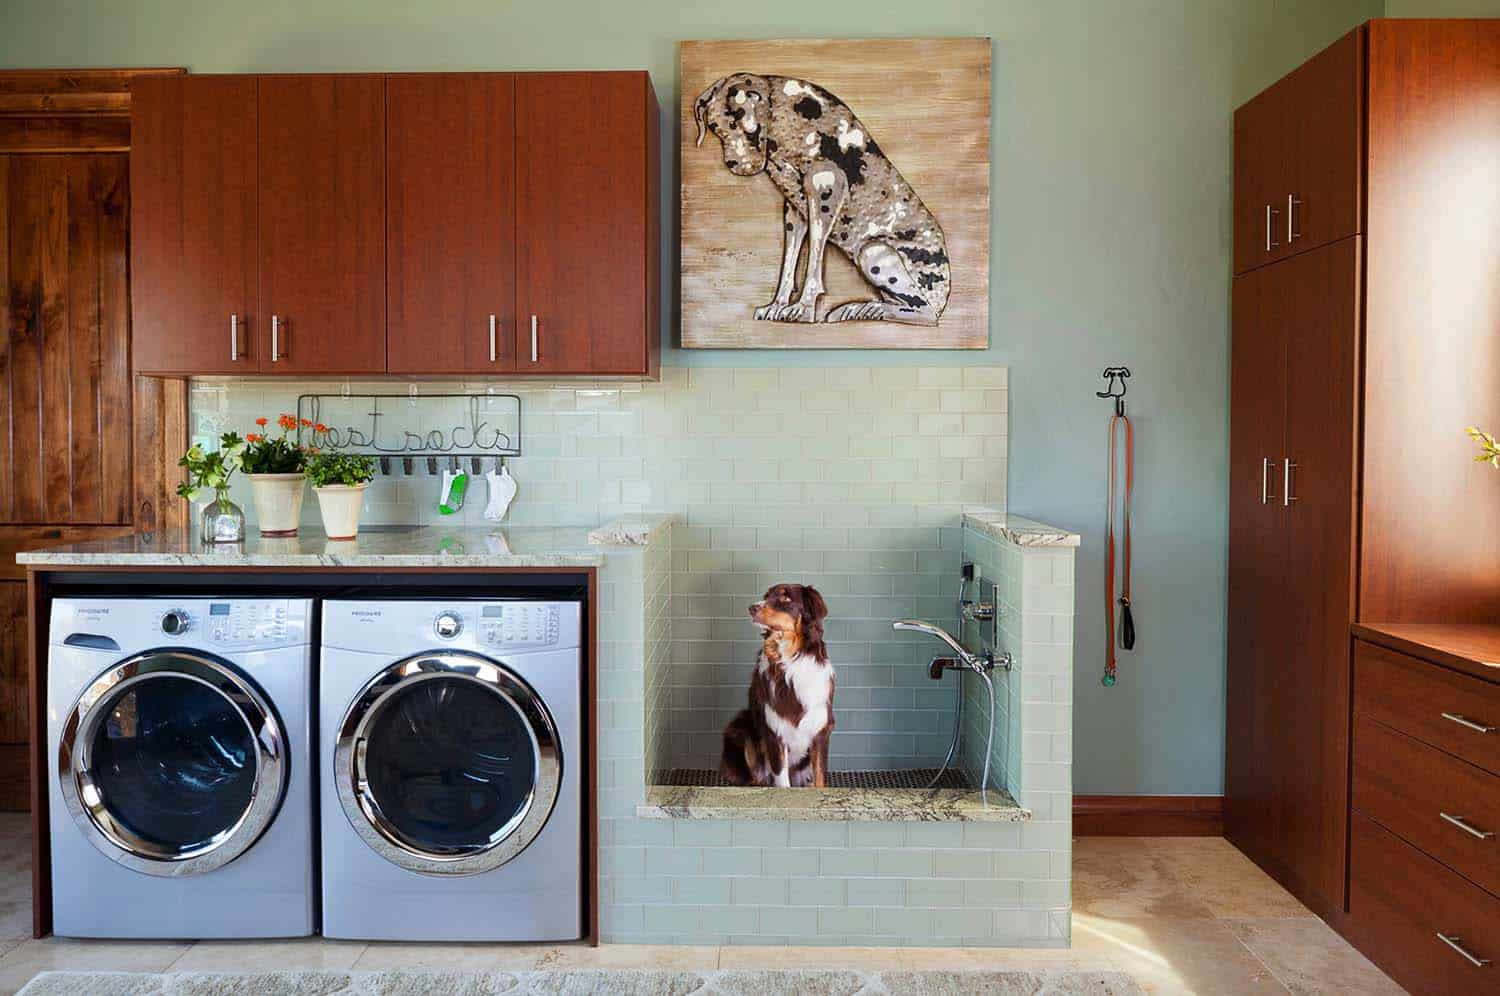 45 Functional And Stylish Laundry Room Design Ideas To Inspire on Laundry Decorating Ideas  id=54636